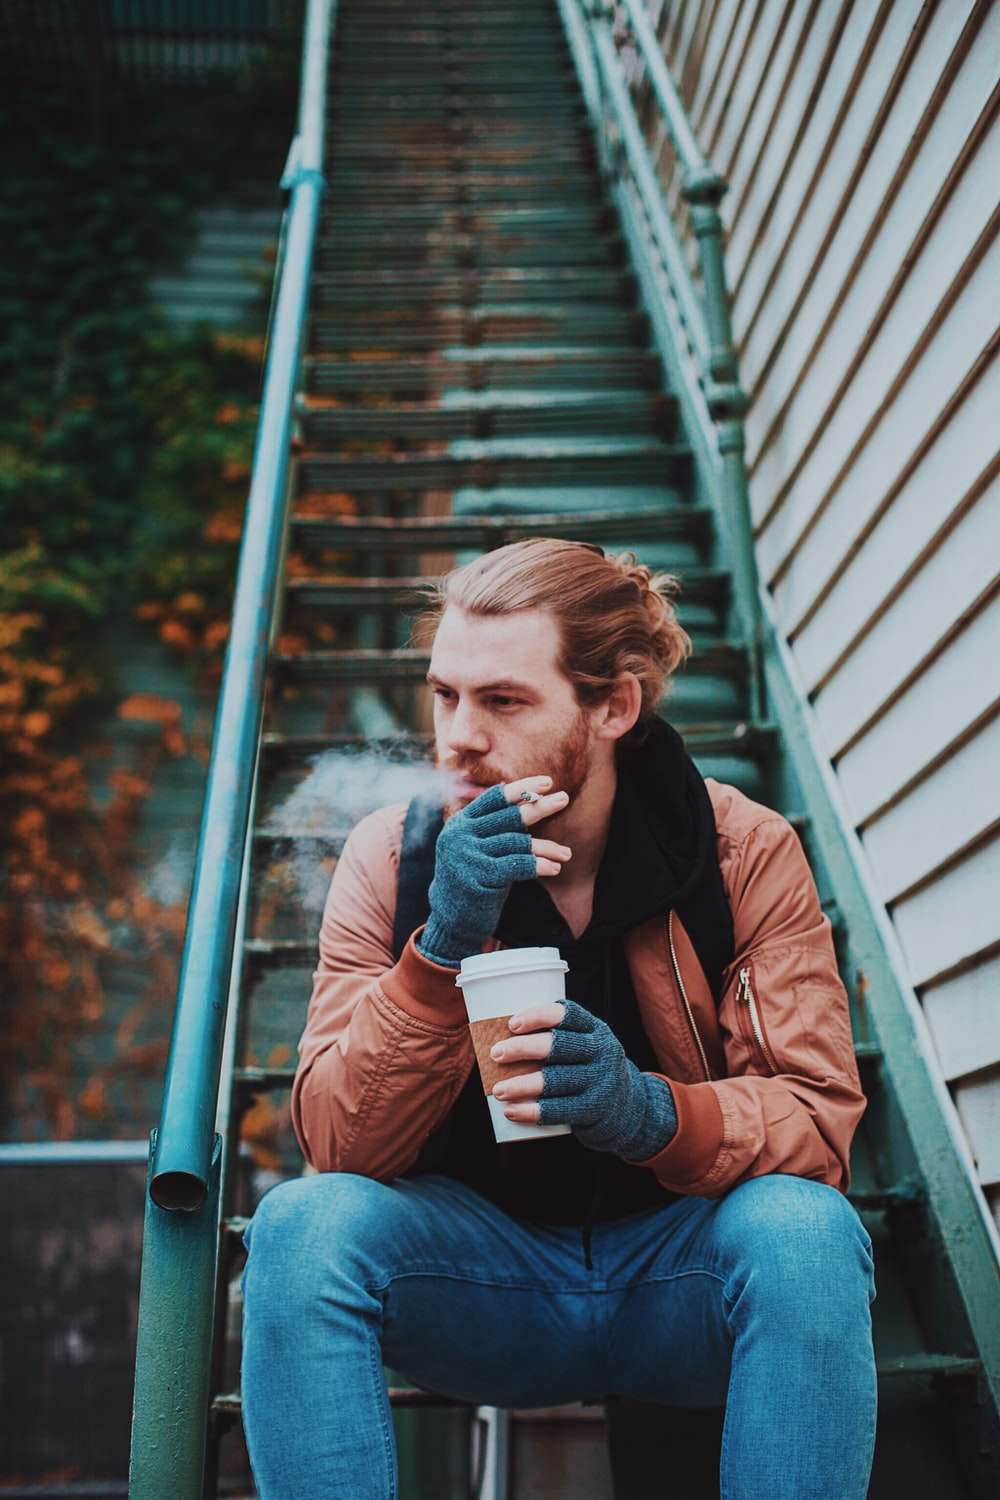 selective focus photography of man smoking while sitting on stair